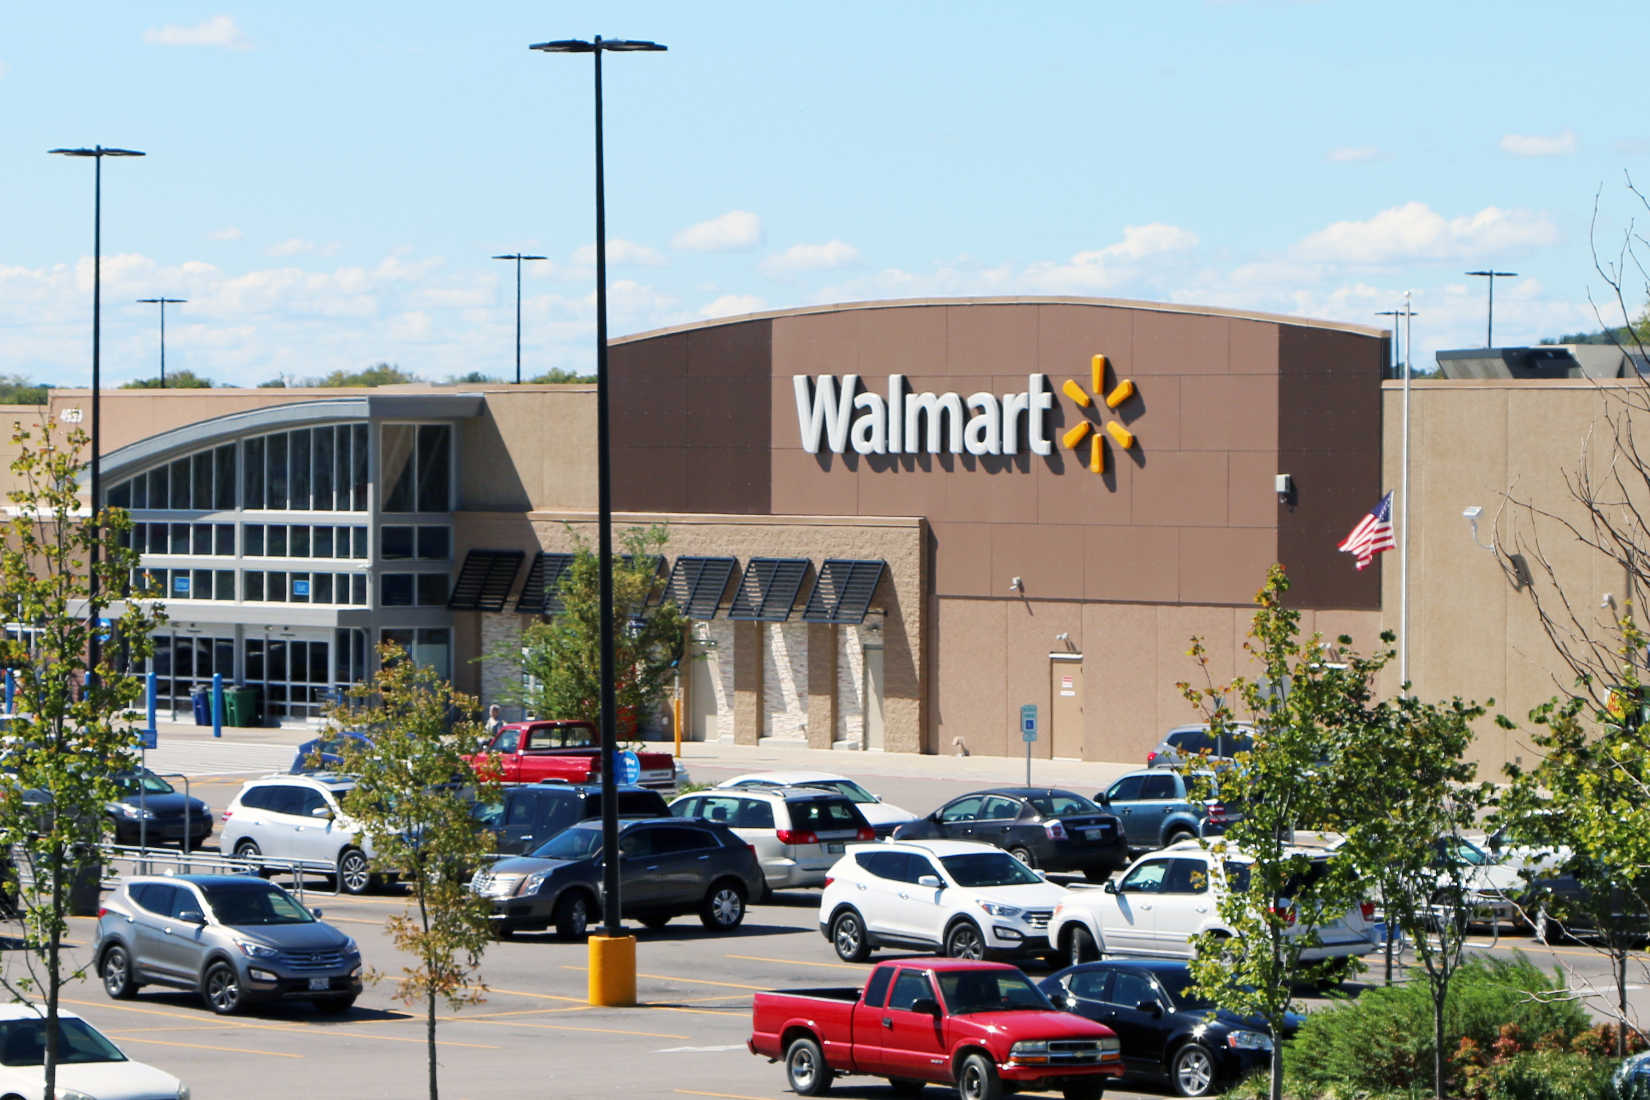 Walmart to Ban Open Carry, Stop Selling Some Types of Ammo